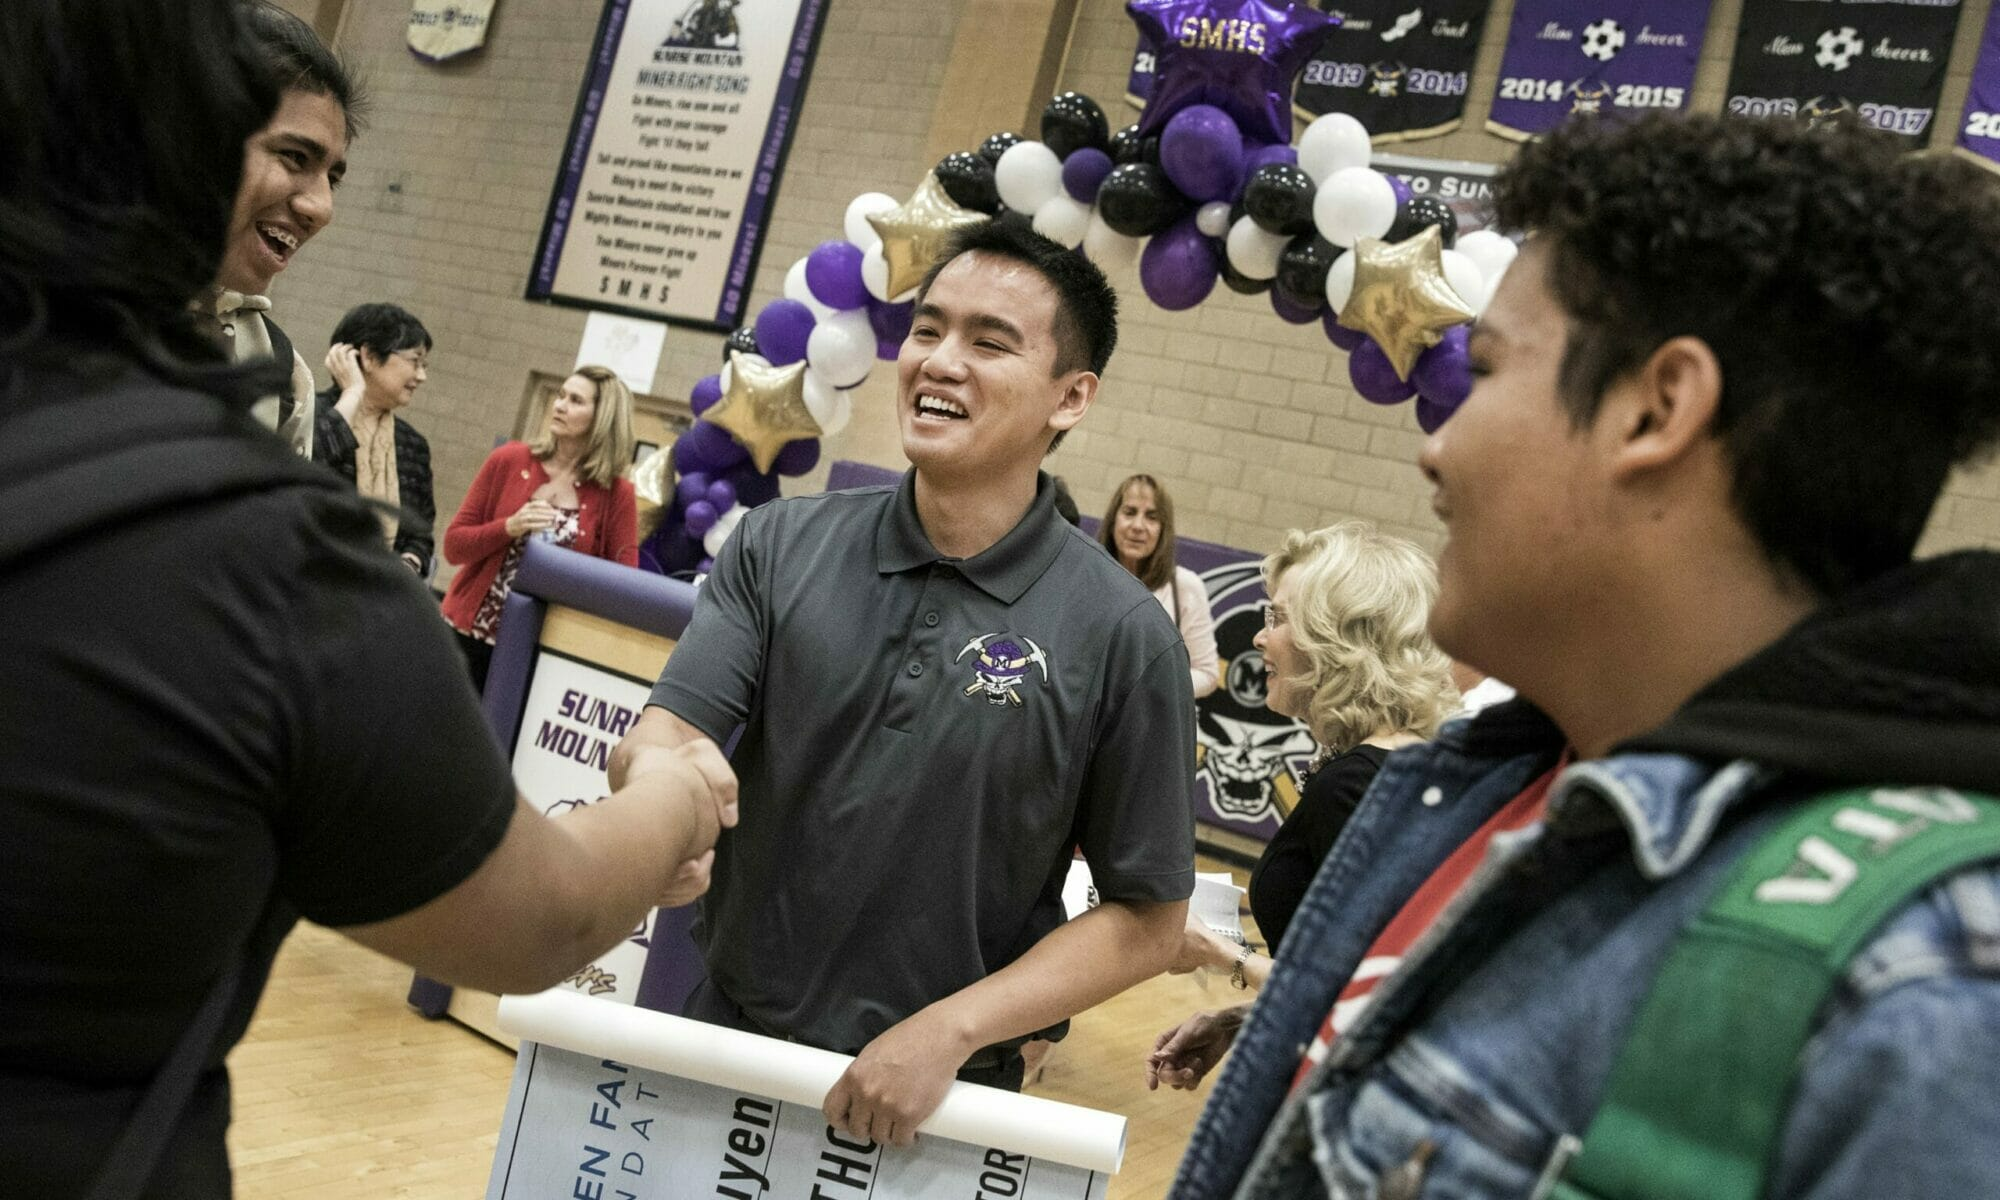 Ben Nguyen shaking hands with a student